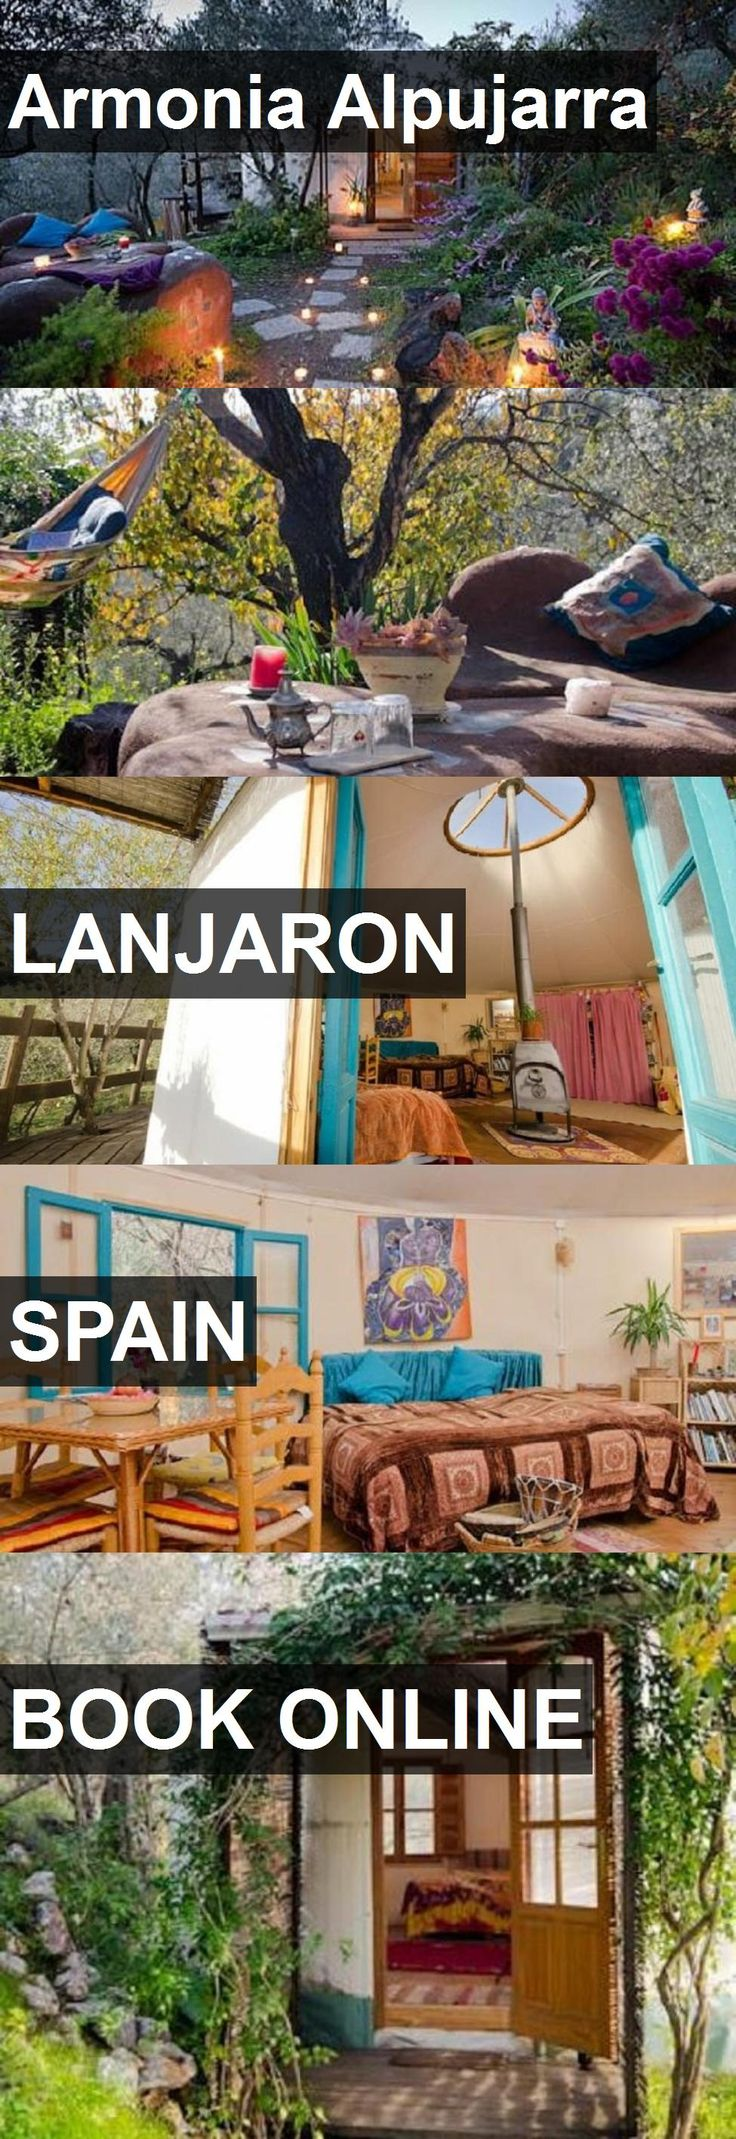 Hotel Armonia Alpujarra in Lanjaron, Spain. For more information, photos, reviews and best prices please follow the link. #Spain #Lanjaron #travel #vacation #hotel